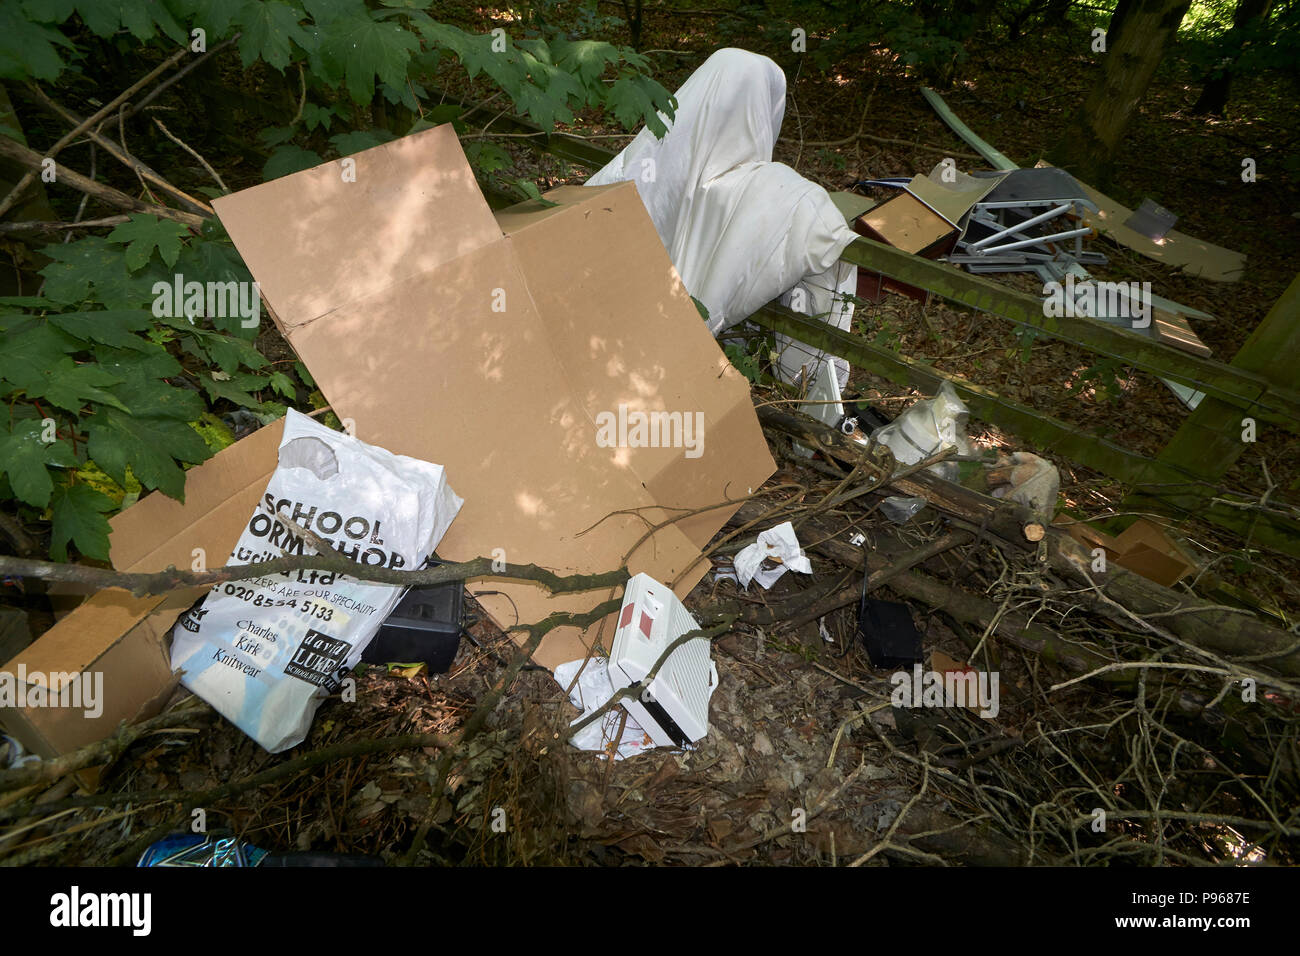 Fly tipping in woodland - Stock Image